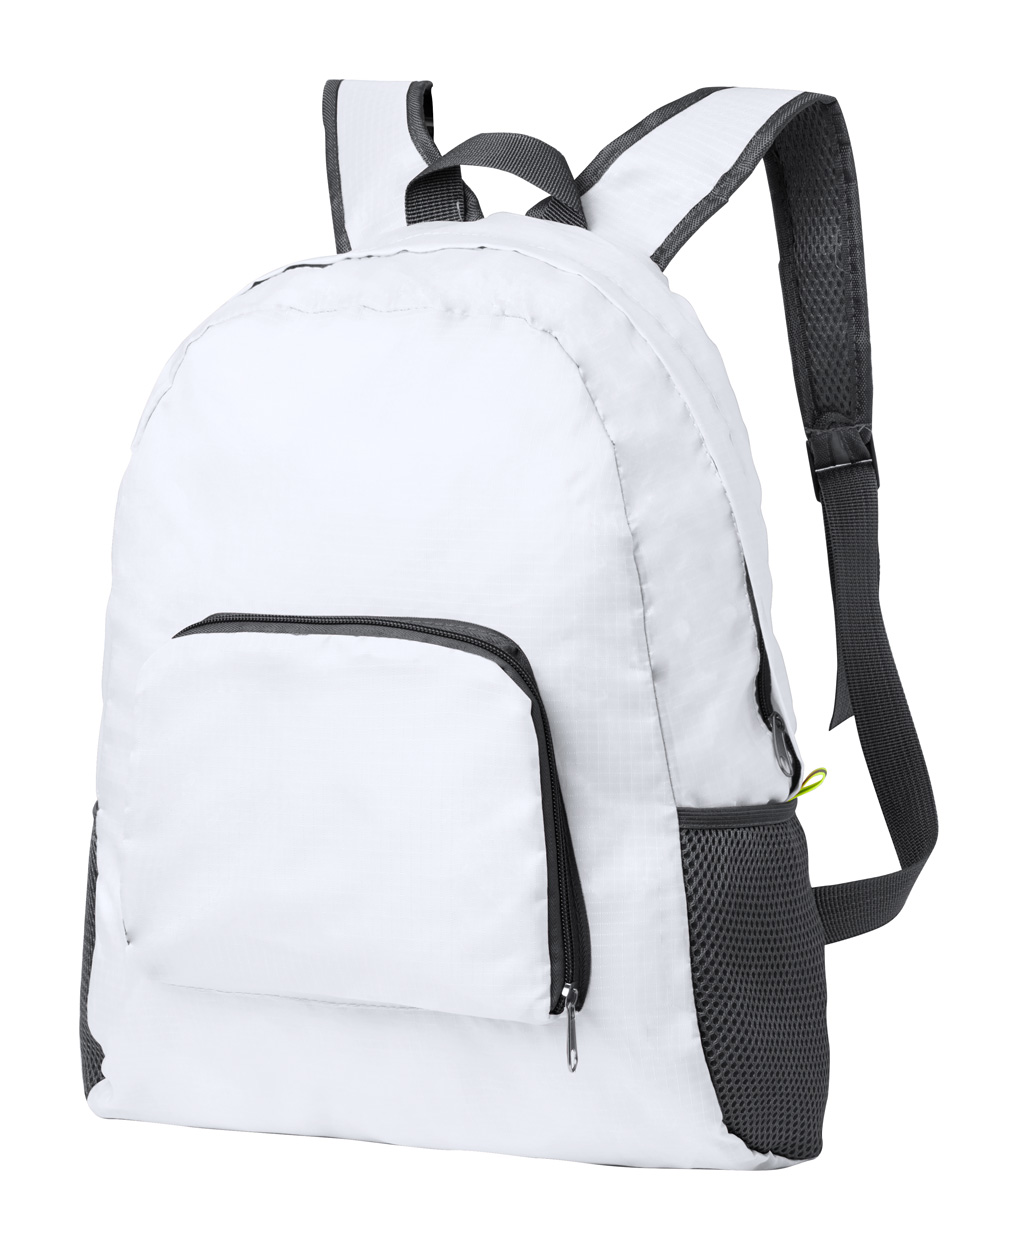 Mendy foldable backpack